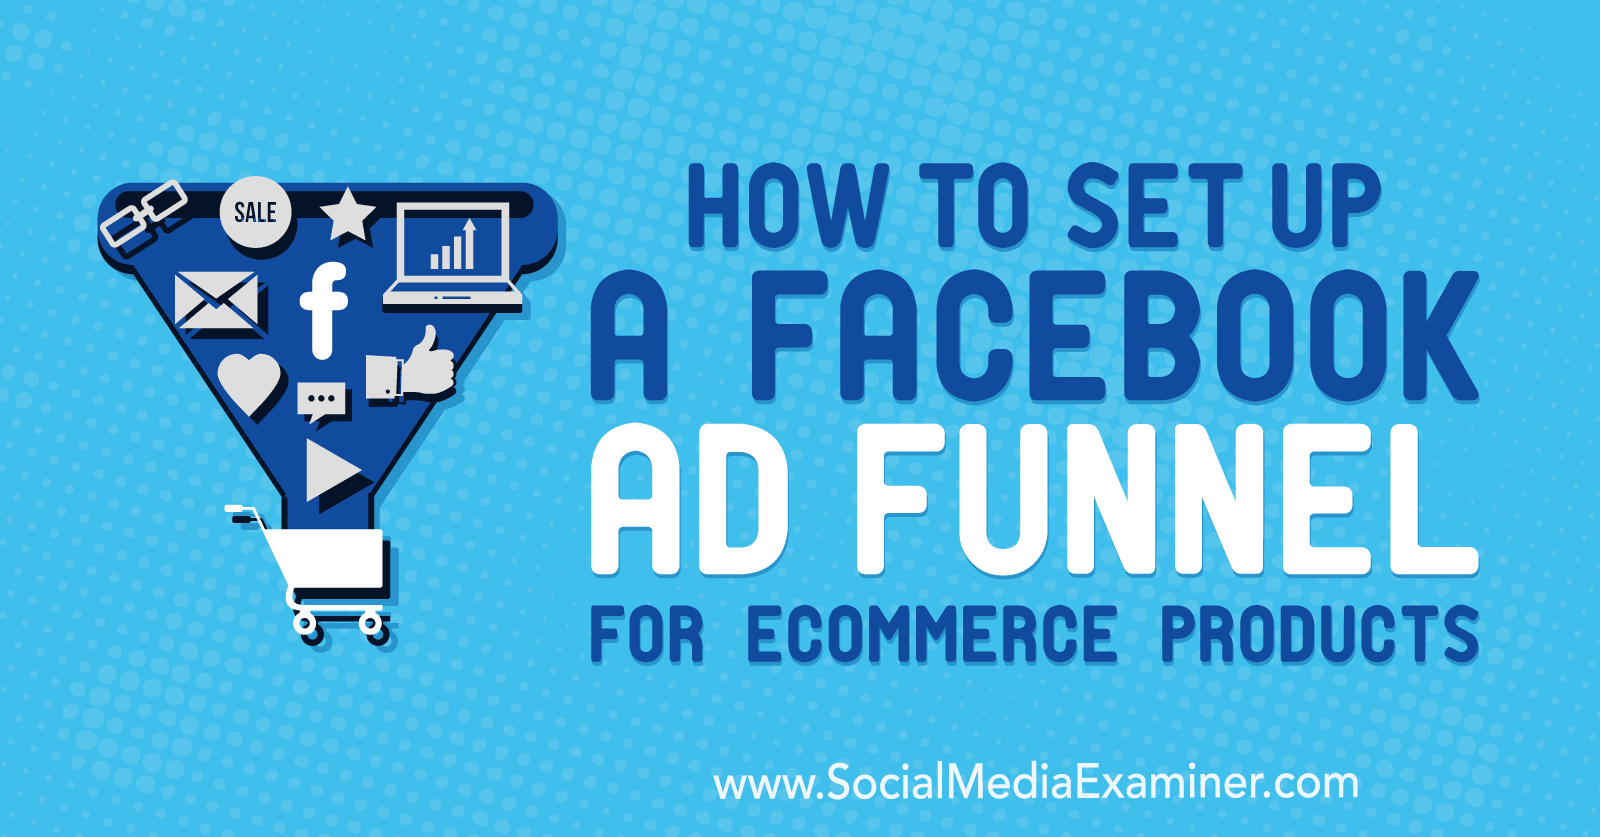 How to Set Up a Facebook Ad Funnel for eCommerce Products